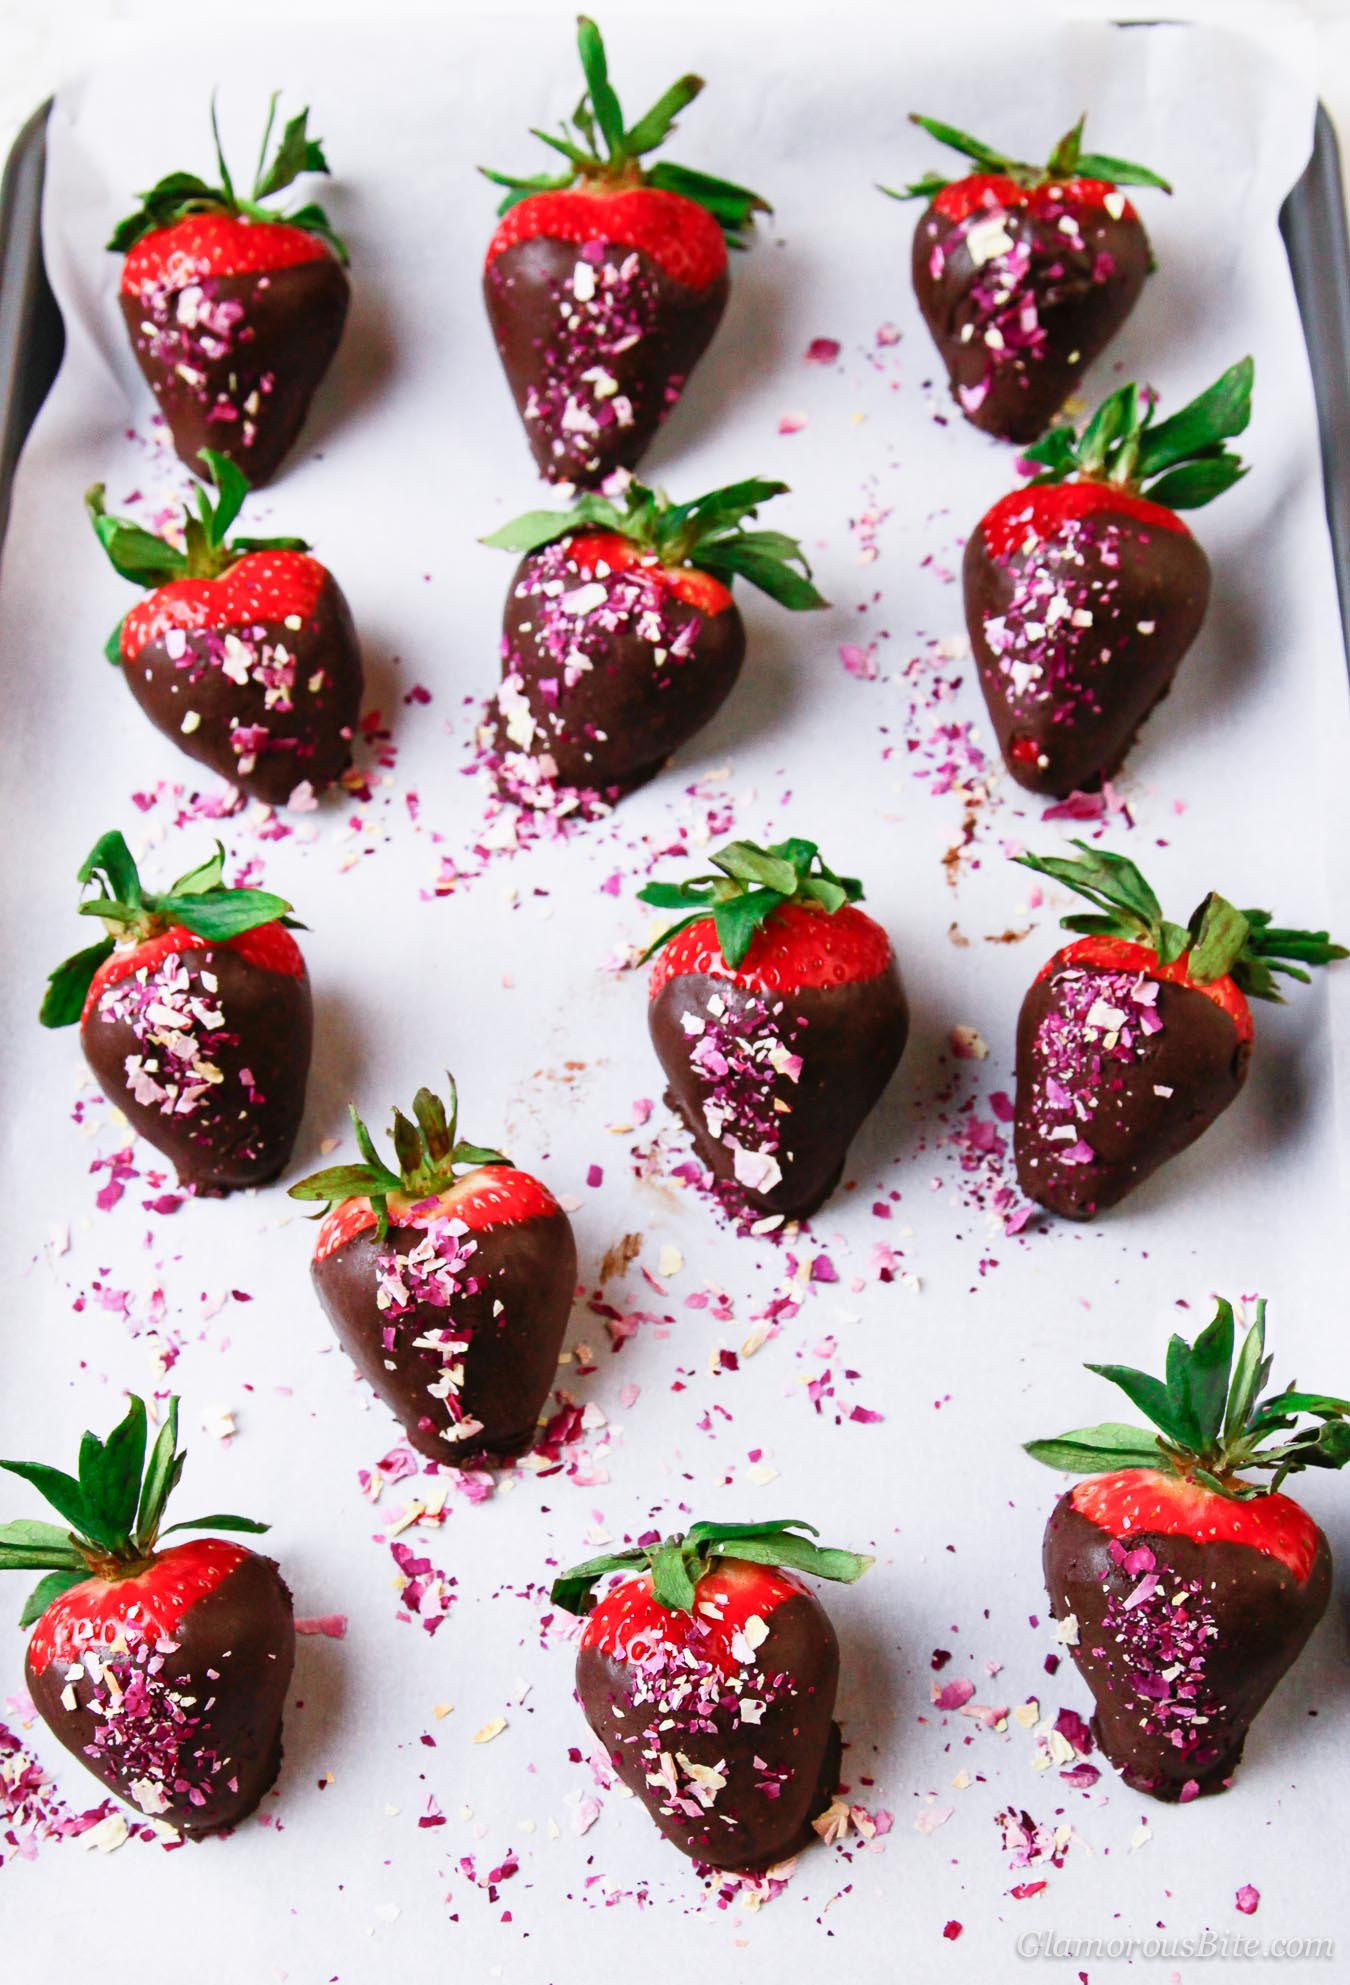 Chocolate Covered Strawberries with Rose Petals